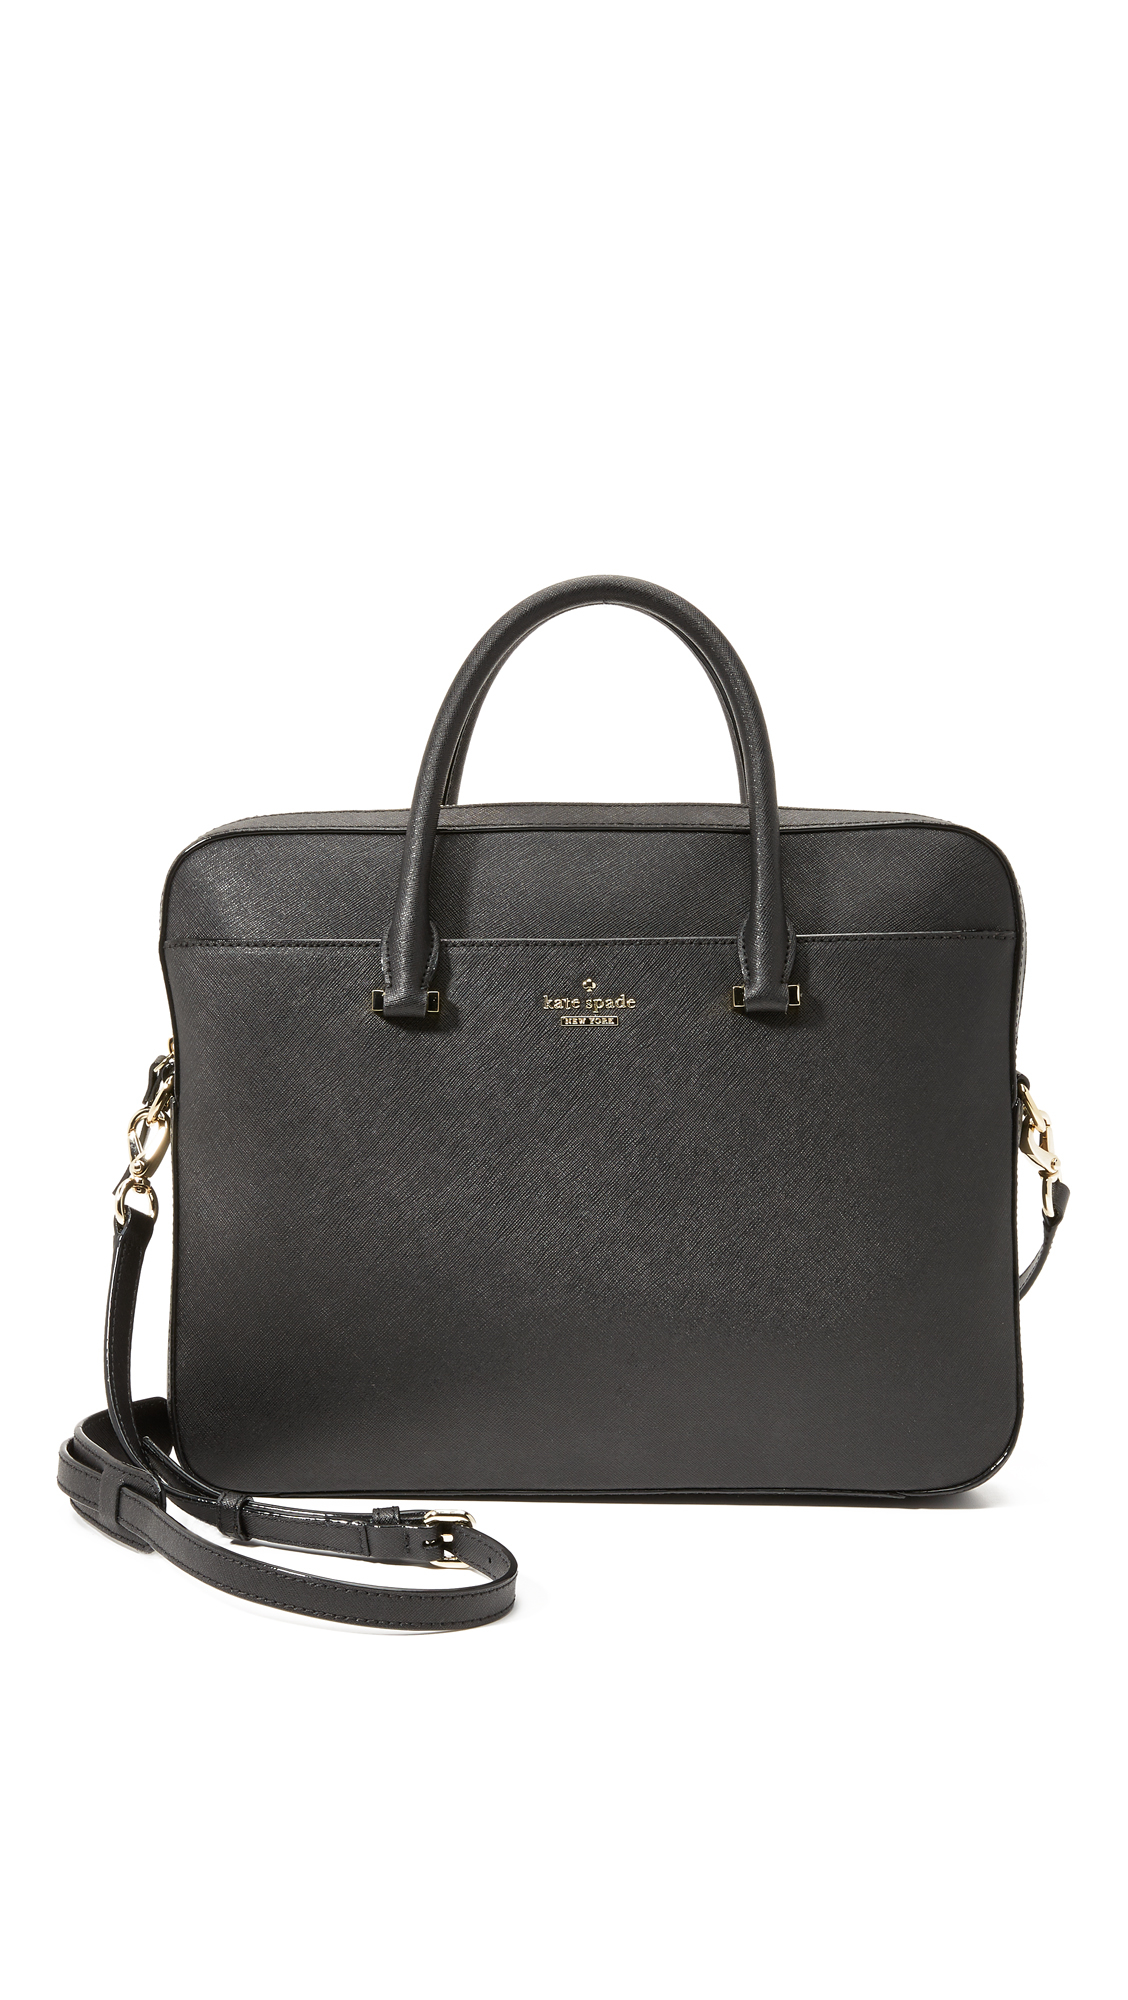 Lyst - Kate Spade 13 Inch Saffiano Laptop Bag in Black eb427d9c0edb7